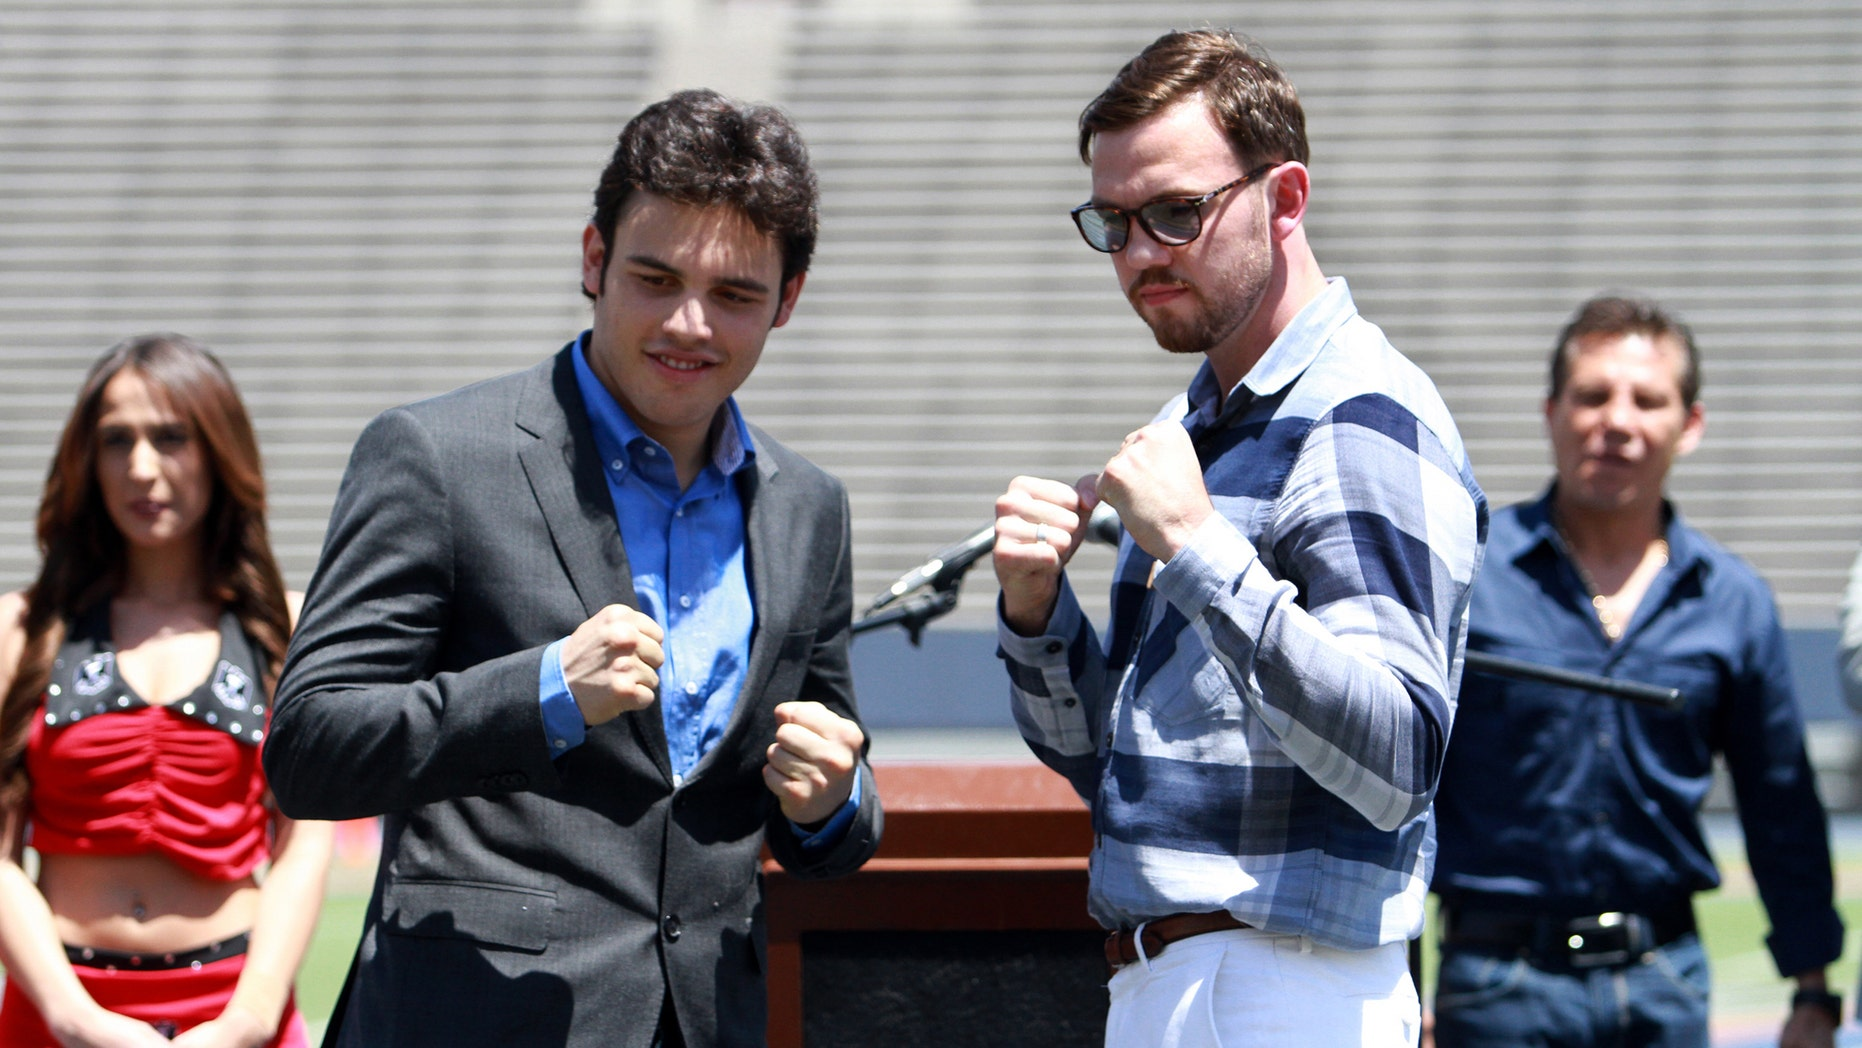 Julio Cesar Chavez Jr. left, and his opponent Andy Lee pose for pictures during a news conference in the Sun Bowl stadium in El Paso, Texas.